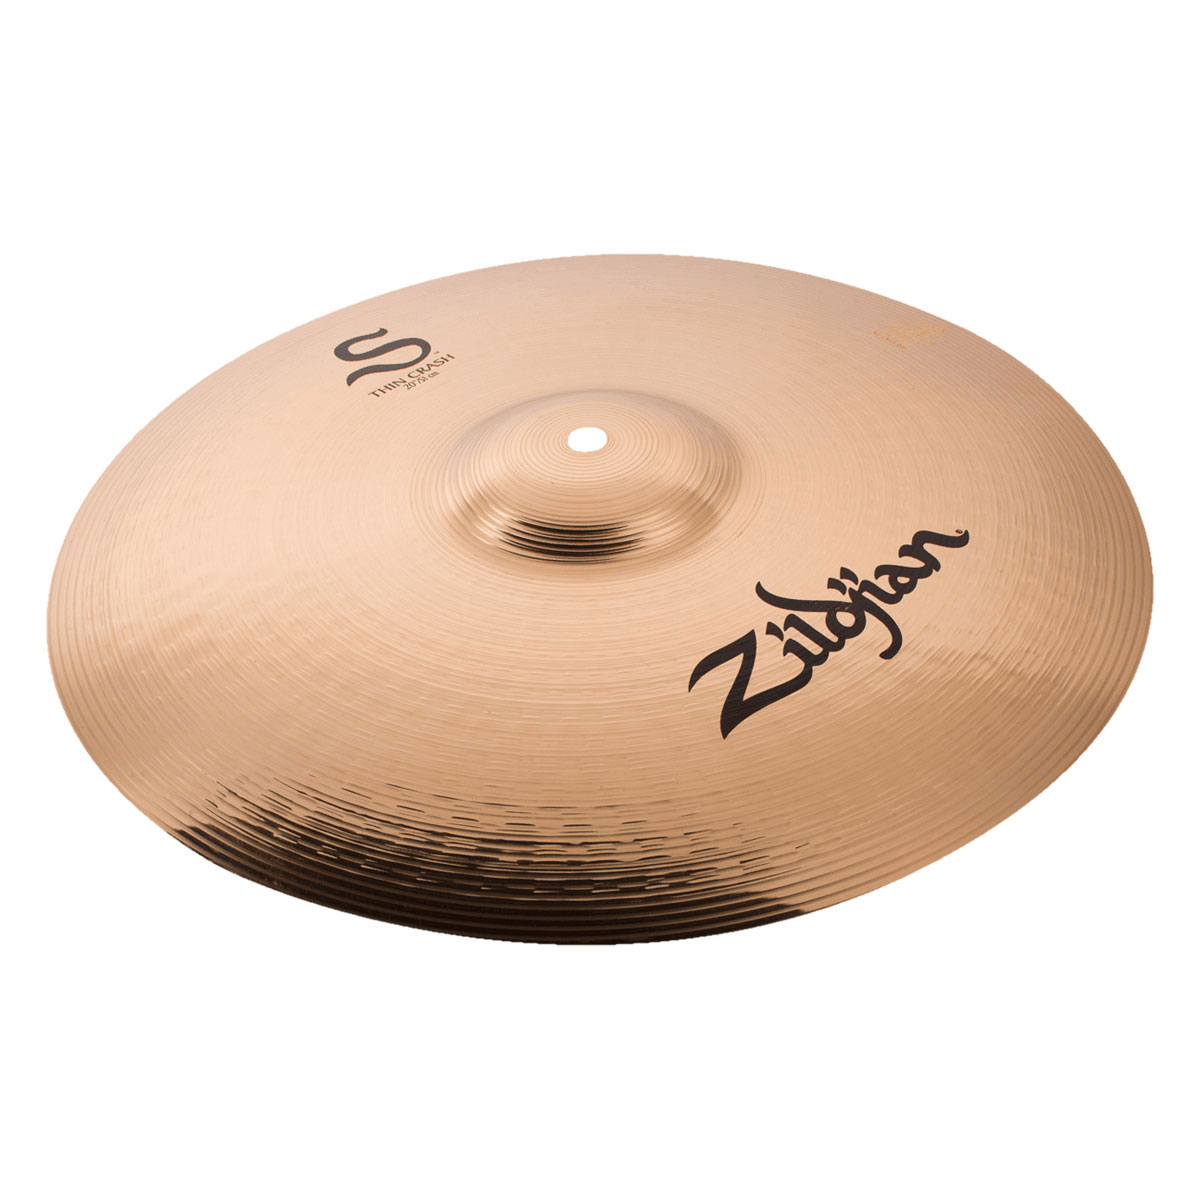 "Zildjian 20"" S Family Thin Crash Cymbal"